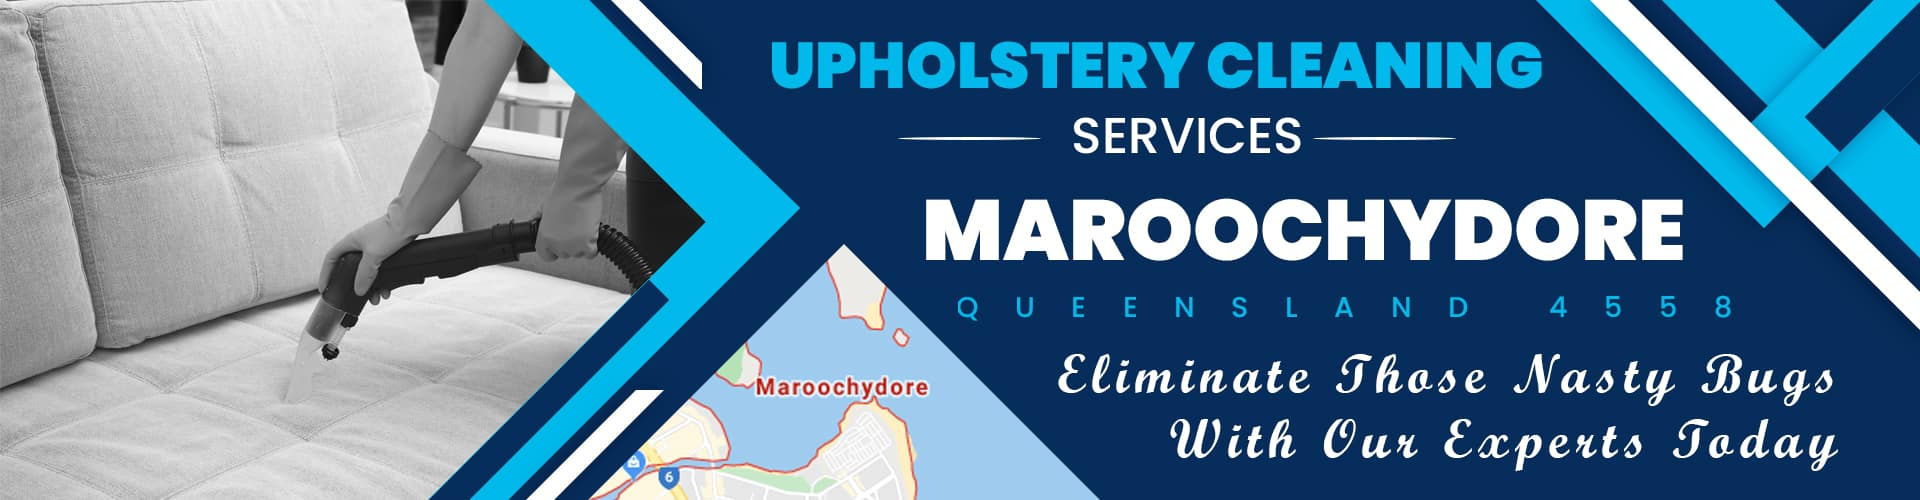 Upholstery Cleaning Maroochydore